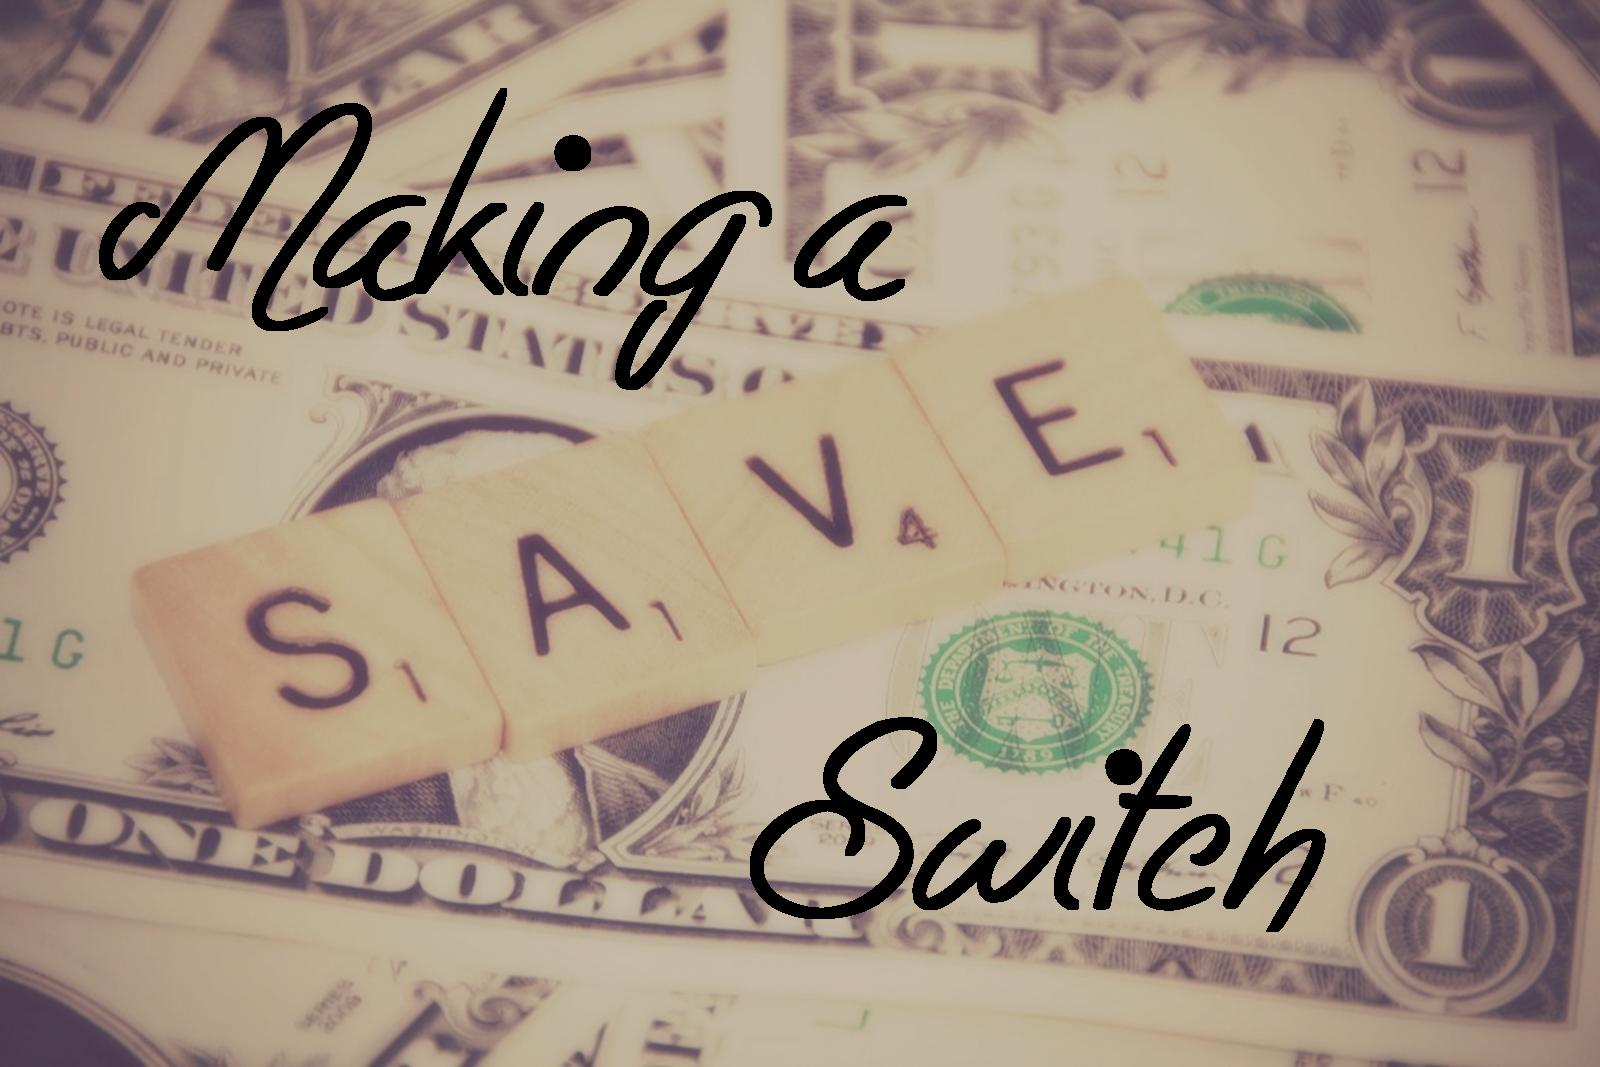 Saving money by switching utility providers